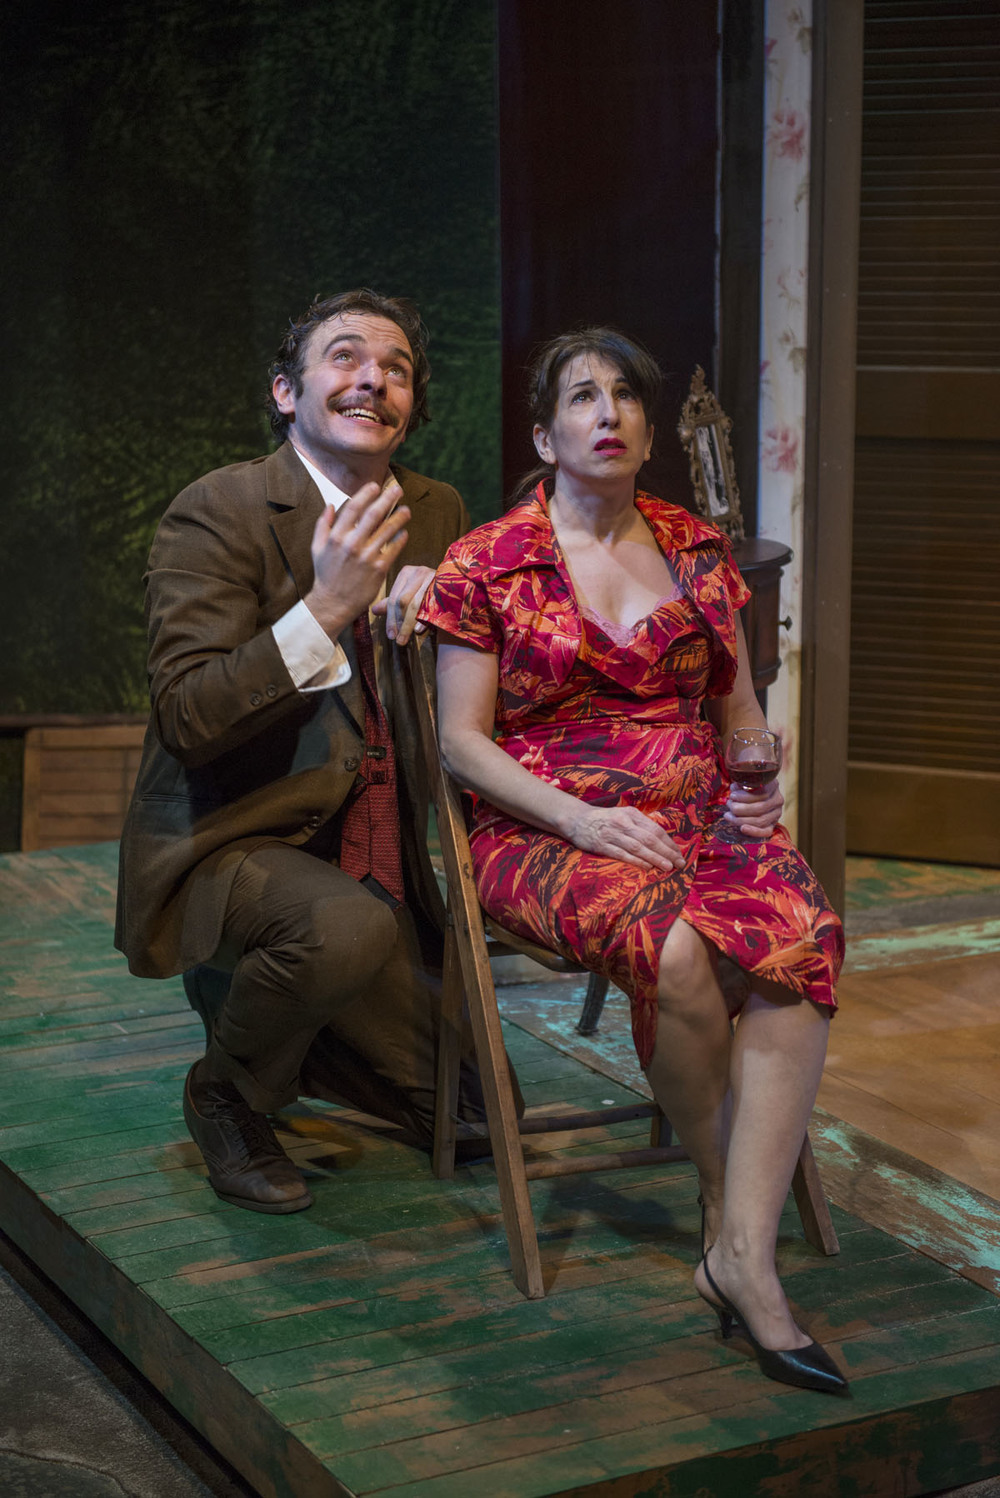 Nic Grelli and Eileen Niccolai in Shattered Globe Theatre's production of THE ROSE TATTOO by Tennessee Williams, directed by Greg Vinkler. Photo by Michael Brosilow